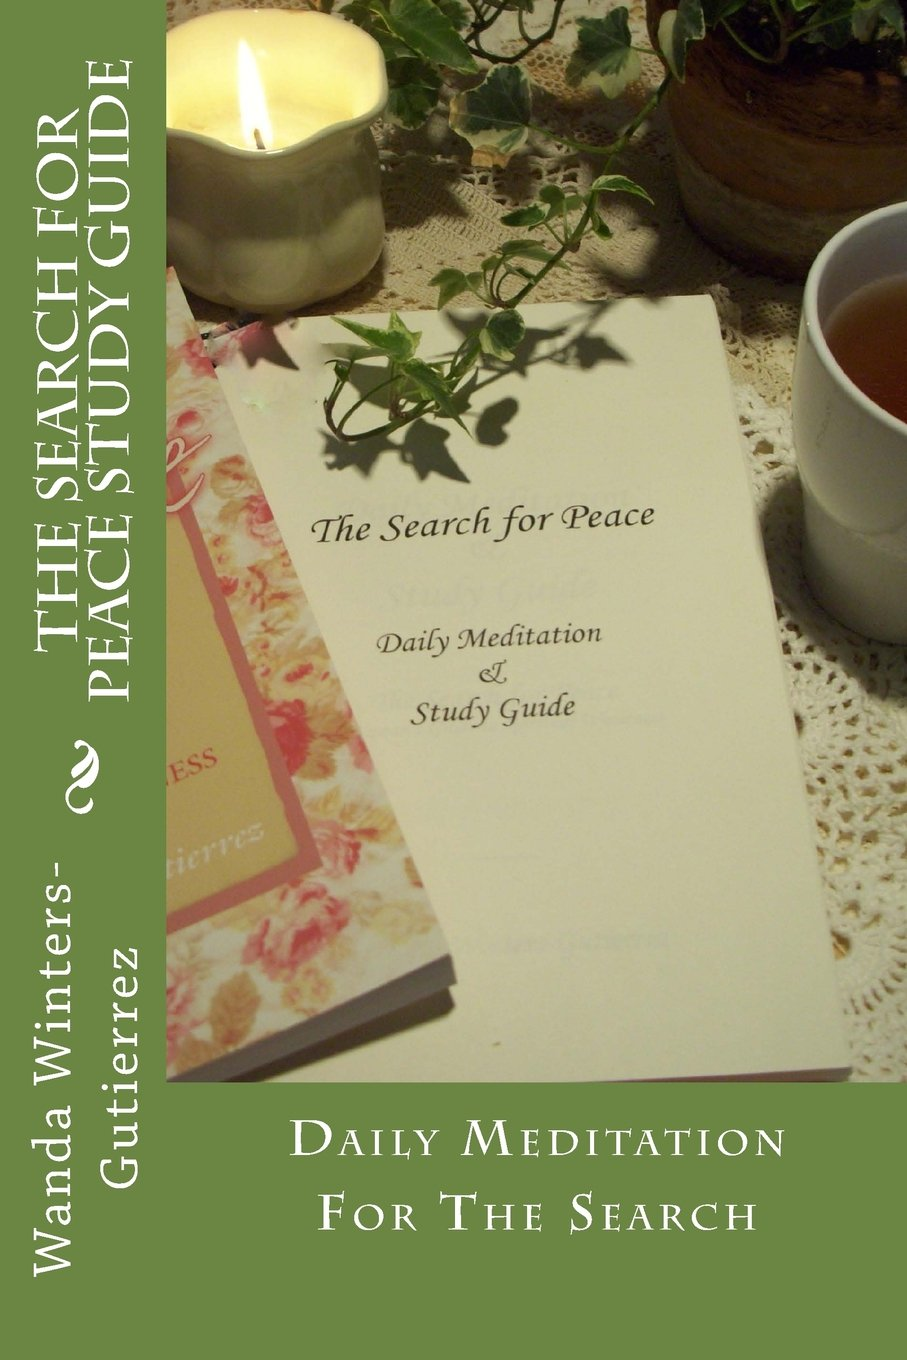 The Search for Peace Study Guide pdf